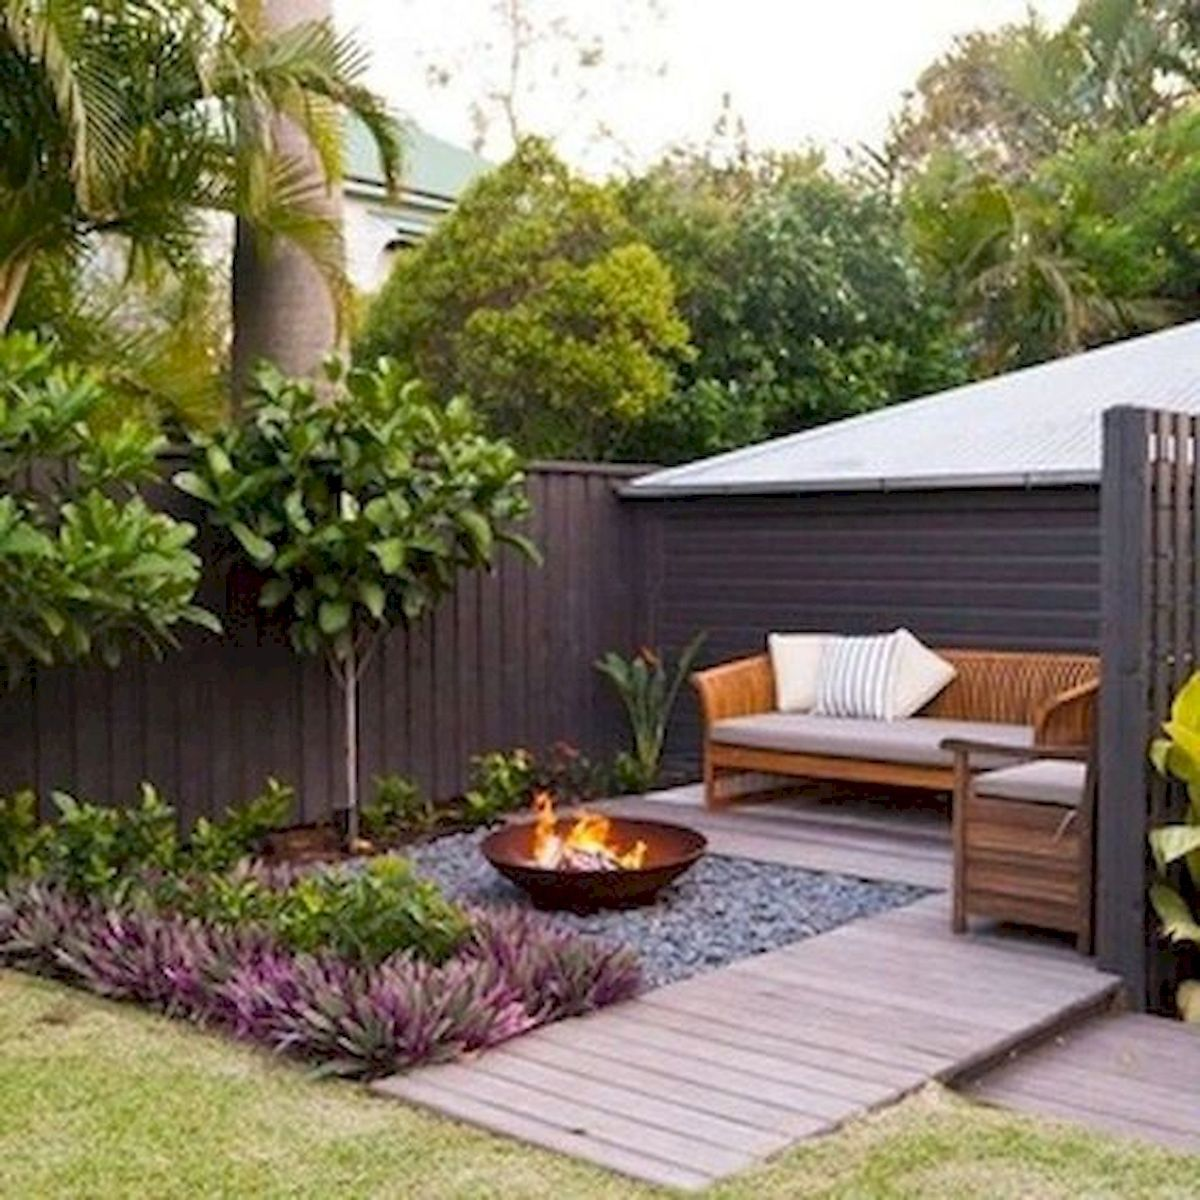 44 Amazing Backyard Seating Ideas To Make You Feel Relax Small